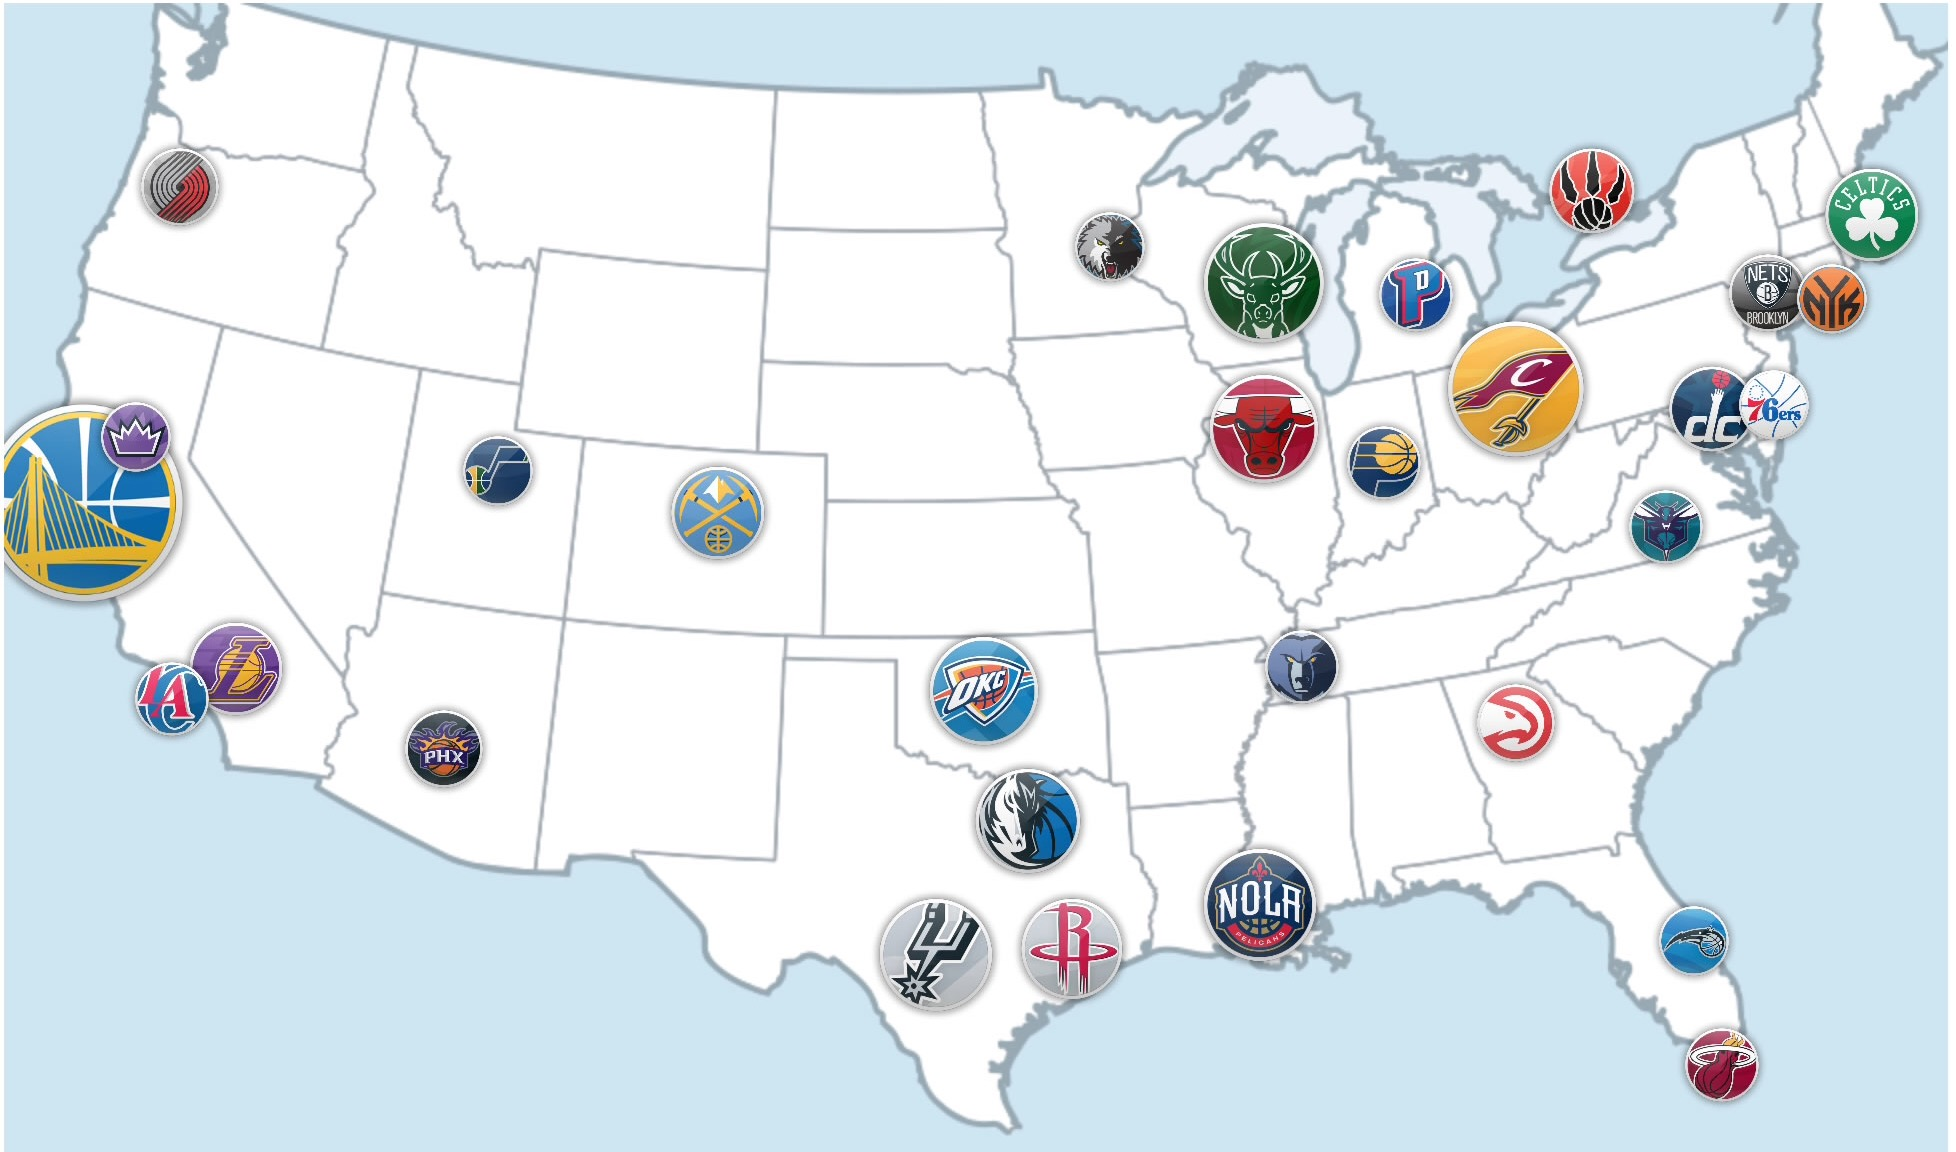 Similiar NBA Teams Map 2017 Keywords